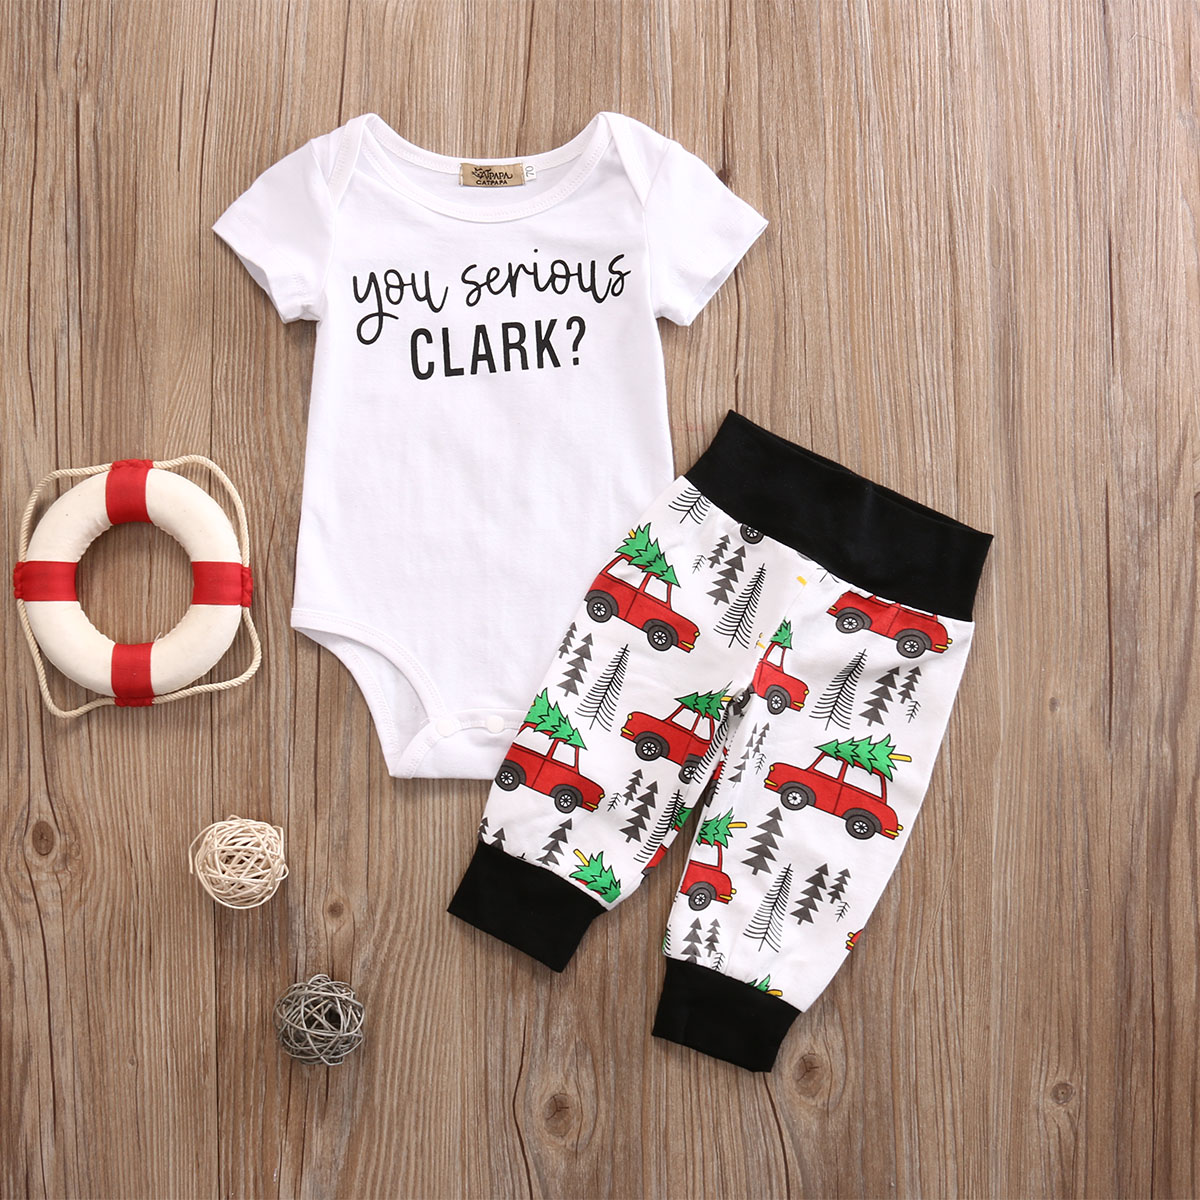 Christmas-Cute-Newborn-Infant-Baby-Boy-Girl-Clothes-Romper-Tops-Bus-Long-Pants-2PCS-Outfit-Set-Baby-Clothing-4